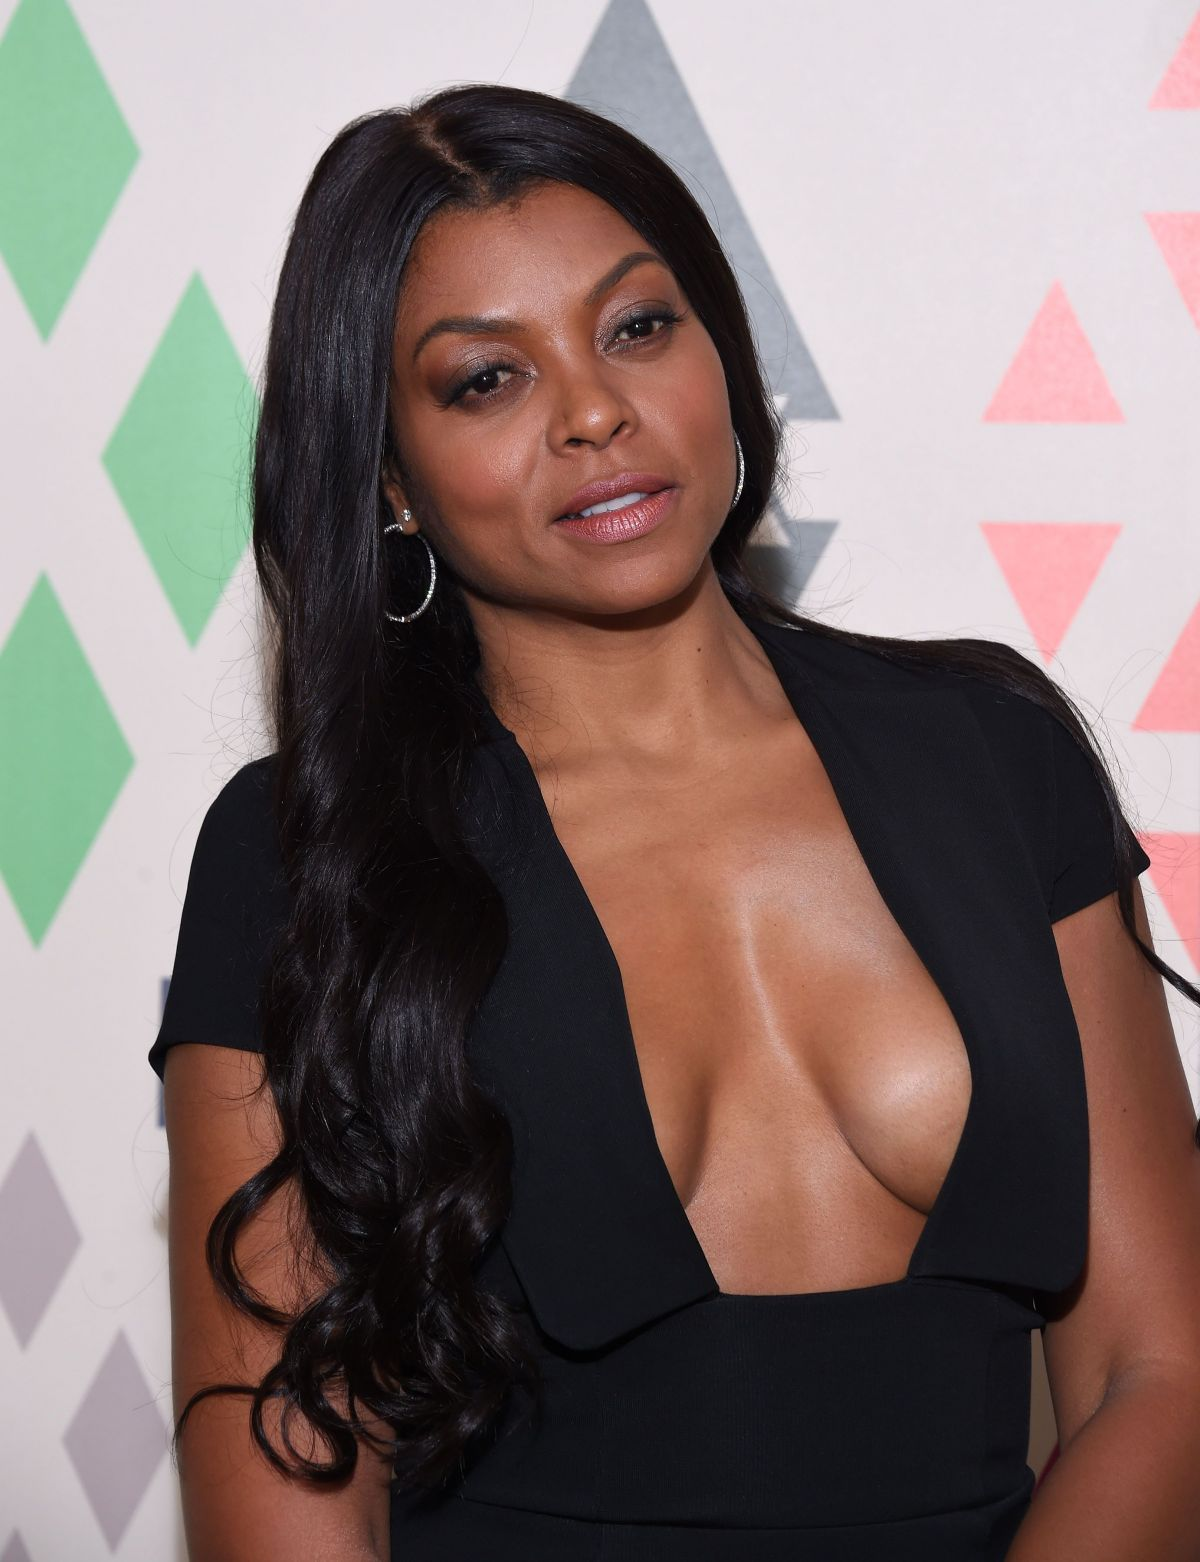 Braless pics of Taraji P. Henson new foto